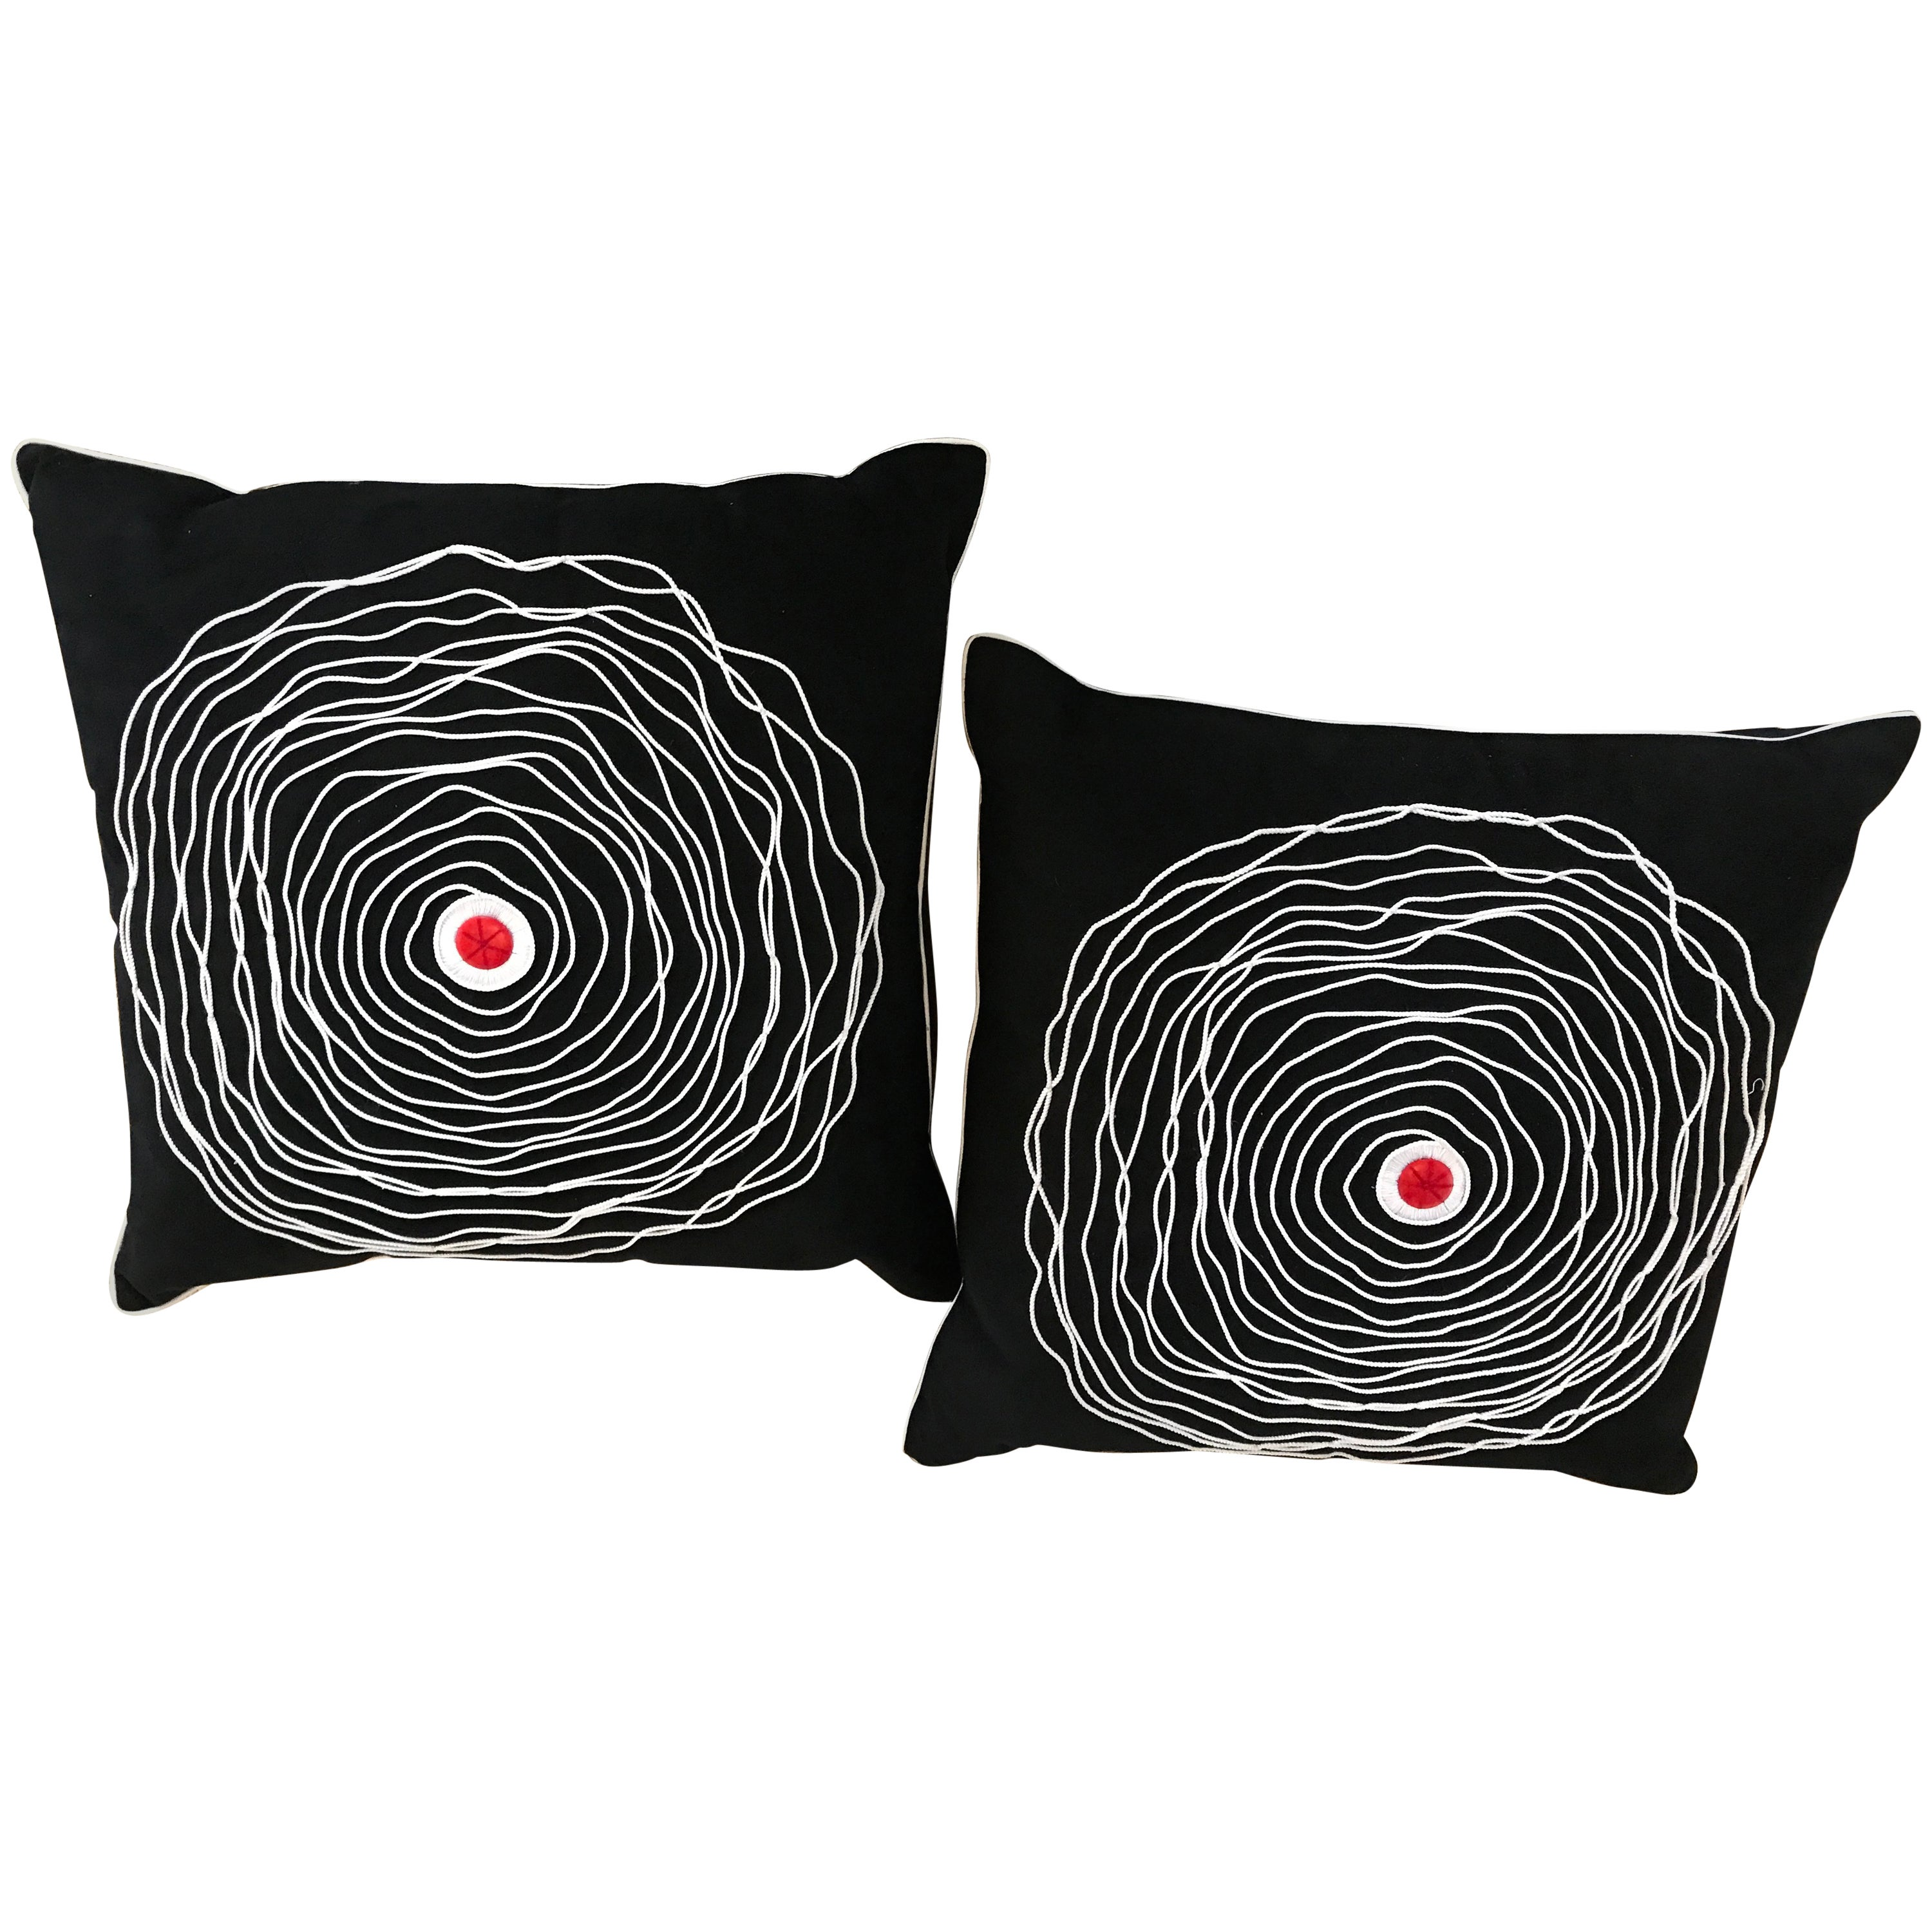 Pair of Black and White Modern Art Decorative Embroidered Cord Pillows